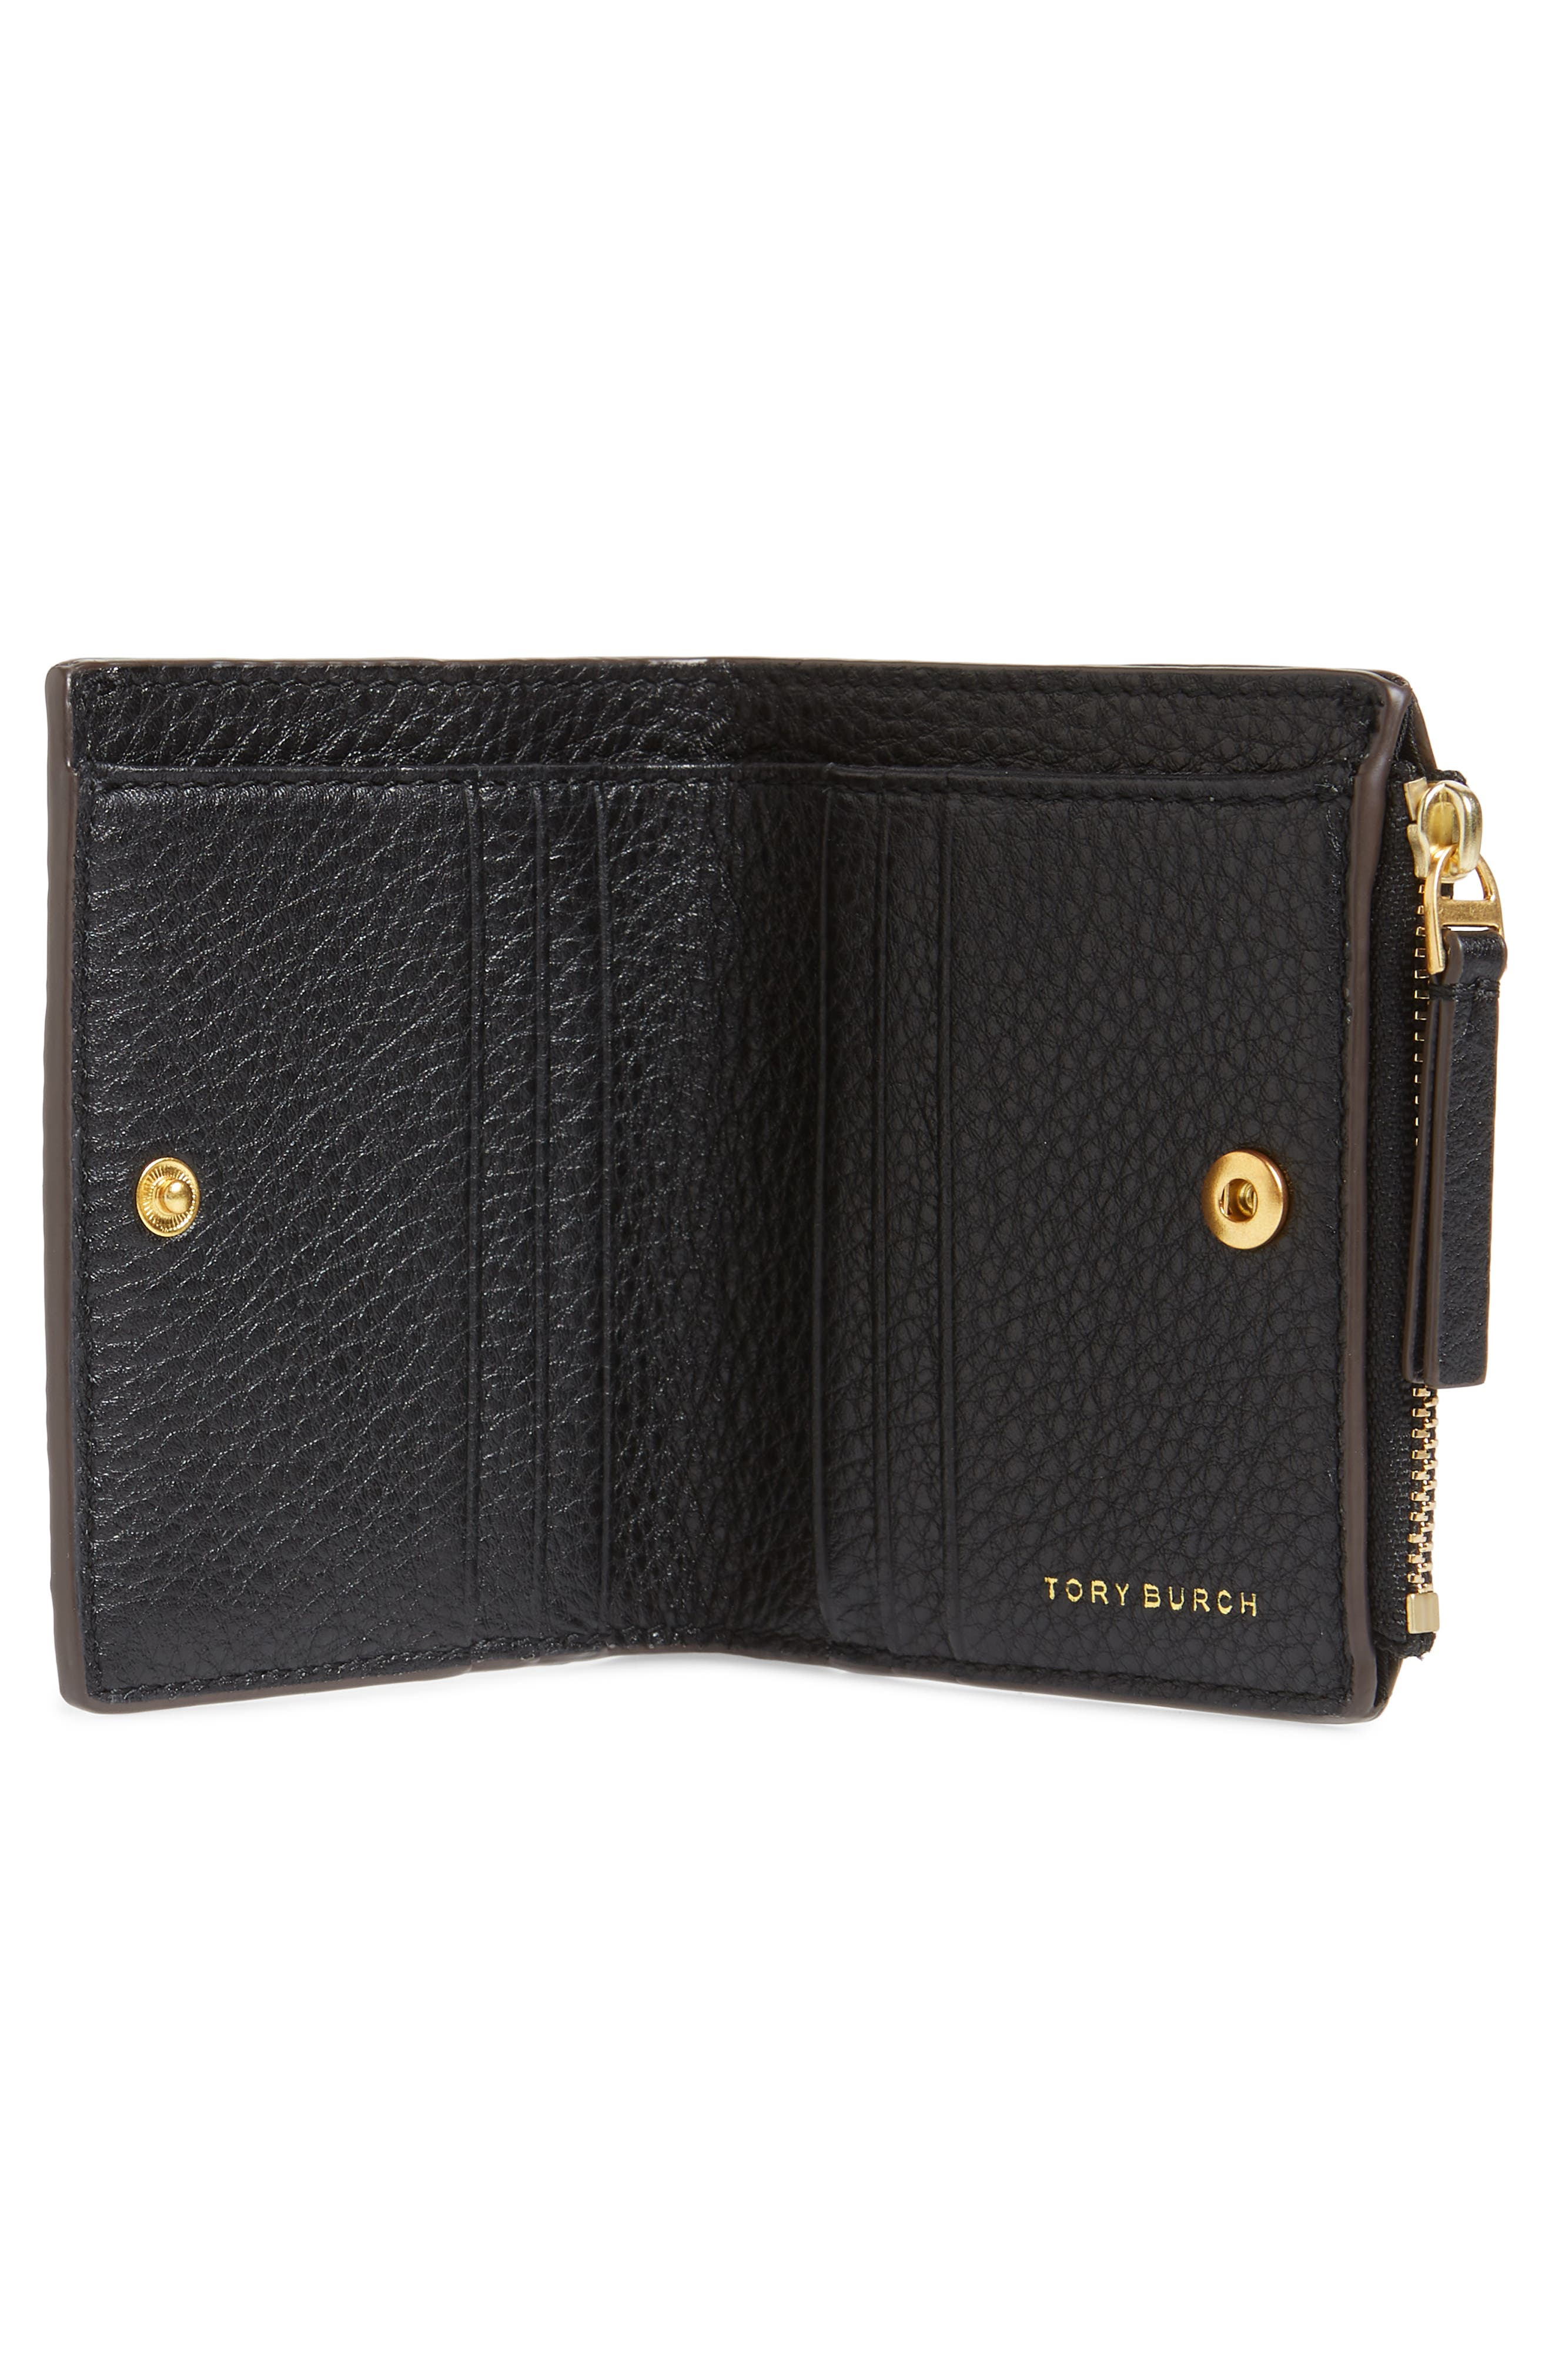 TORY BURCH,                             McGraw Leather Bifold Wallet,                             Alternate thumbnail 2, color,                             001